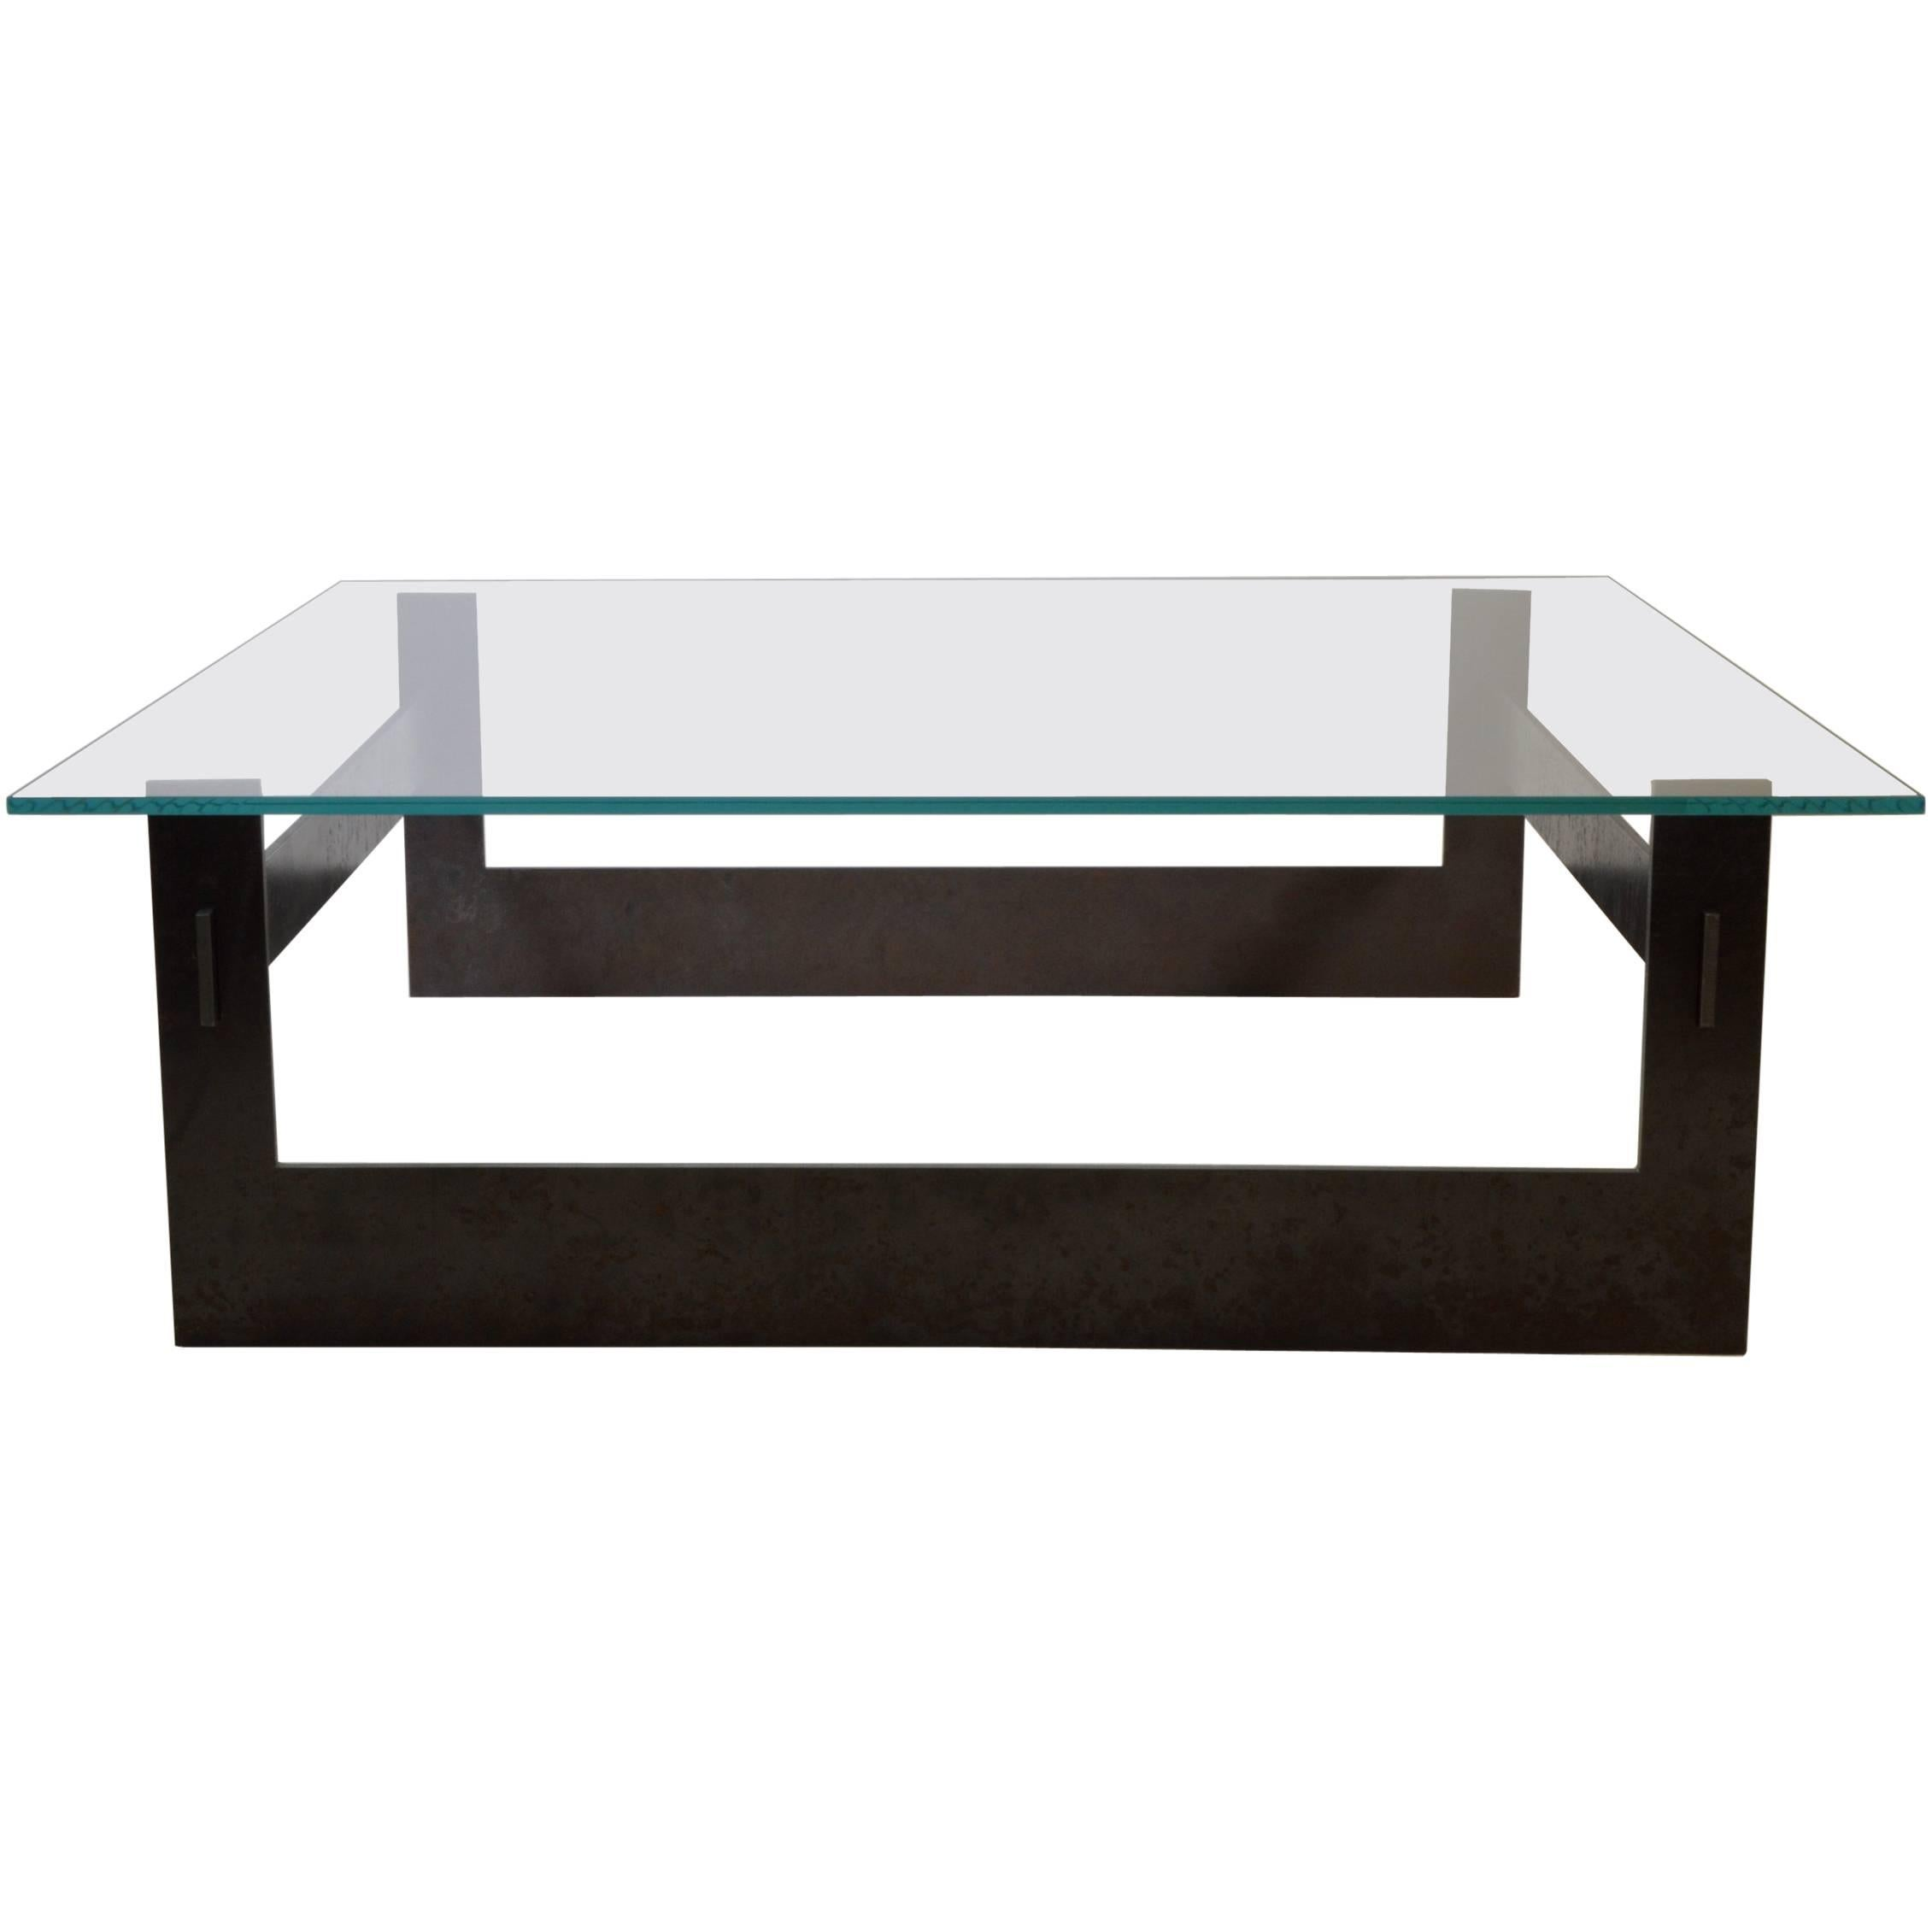 Contemporary Minimalist Blackened Steel and Glass Coffee Table by Scott Gordon